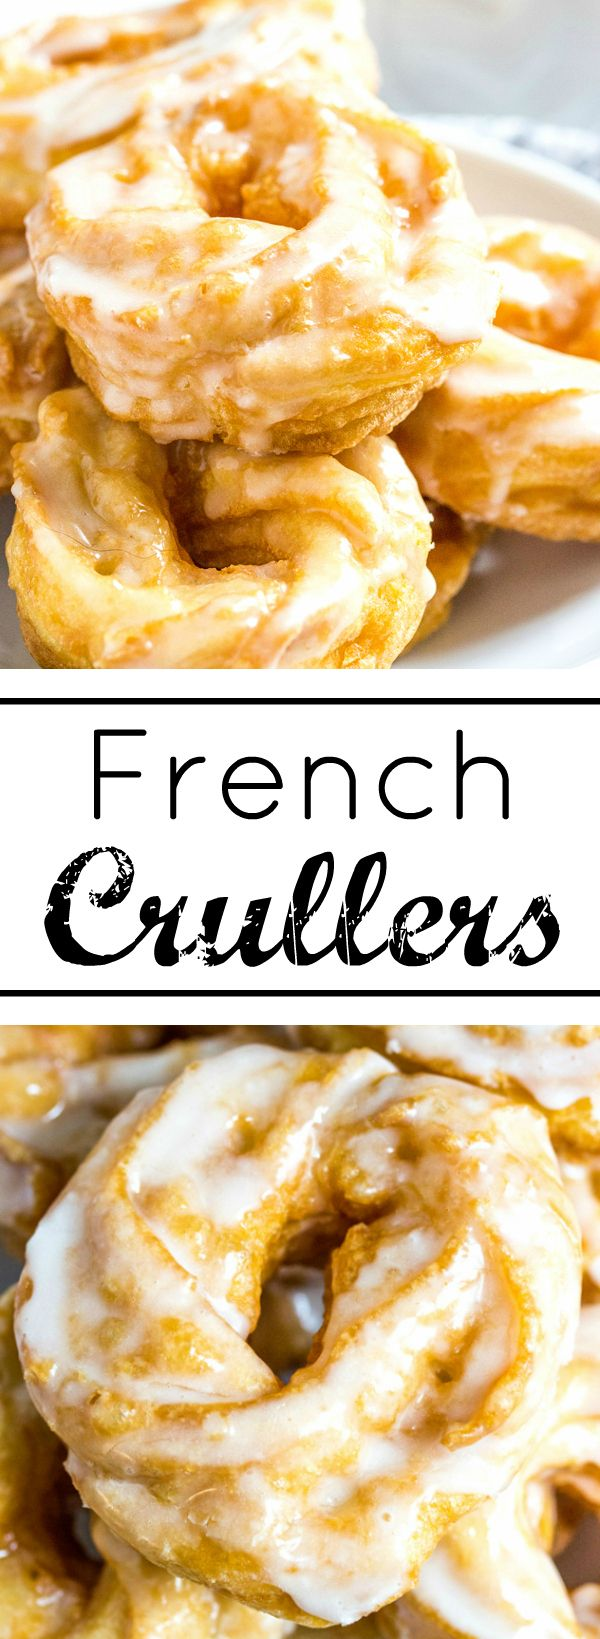 Great with your morning coffee these puffy and delicious French Crullers are so easy to make at home that you'll want the every morning!